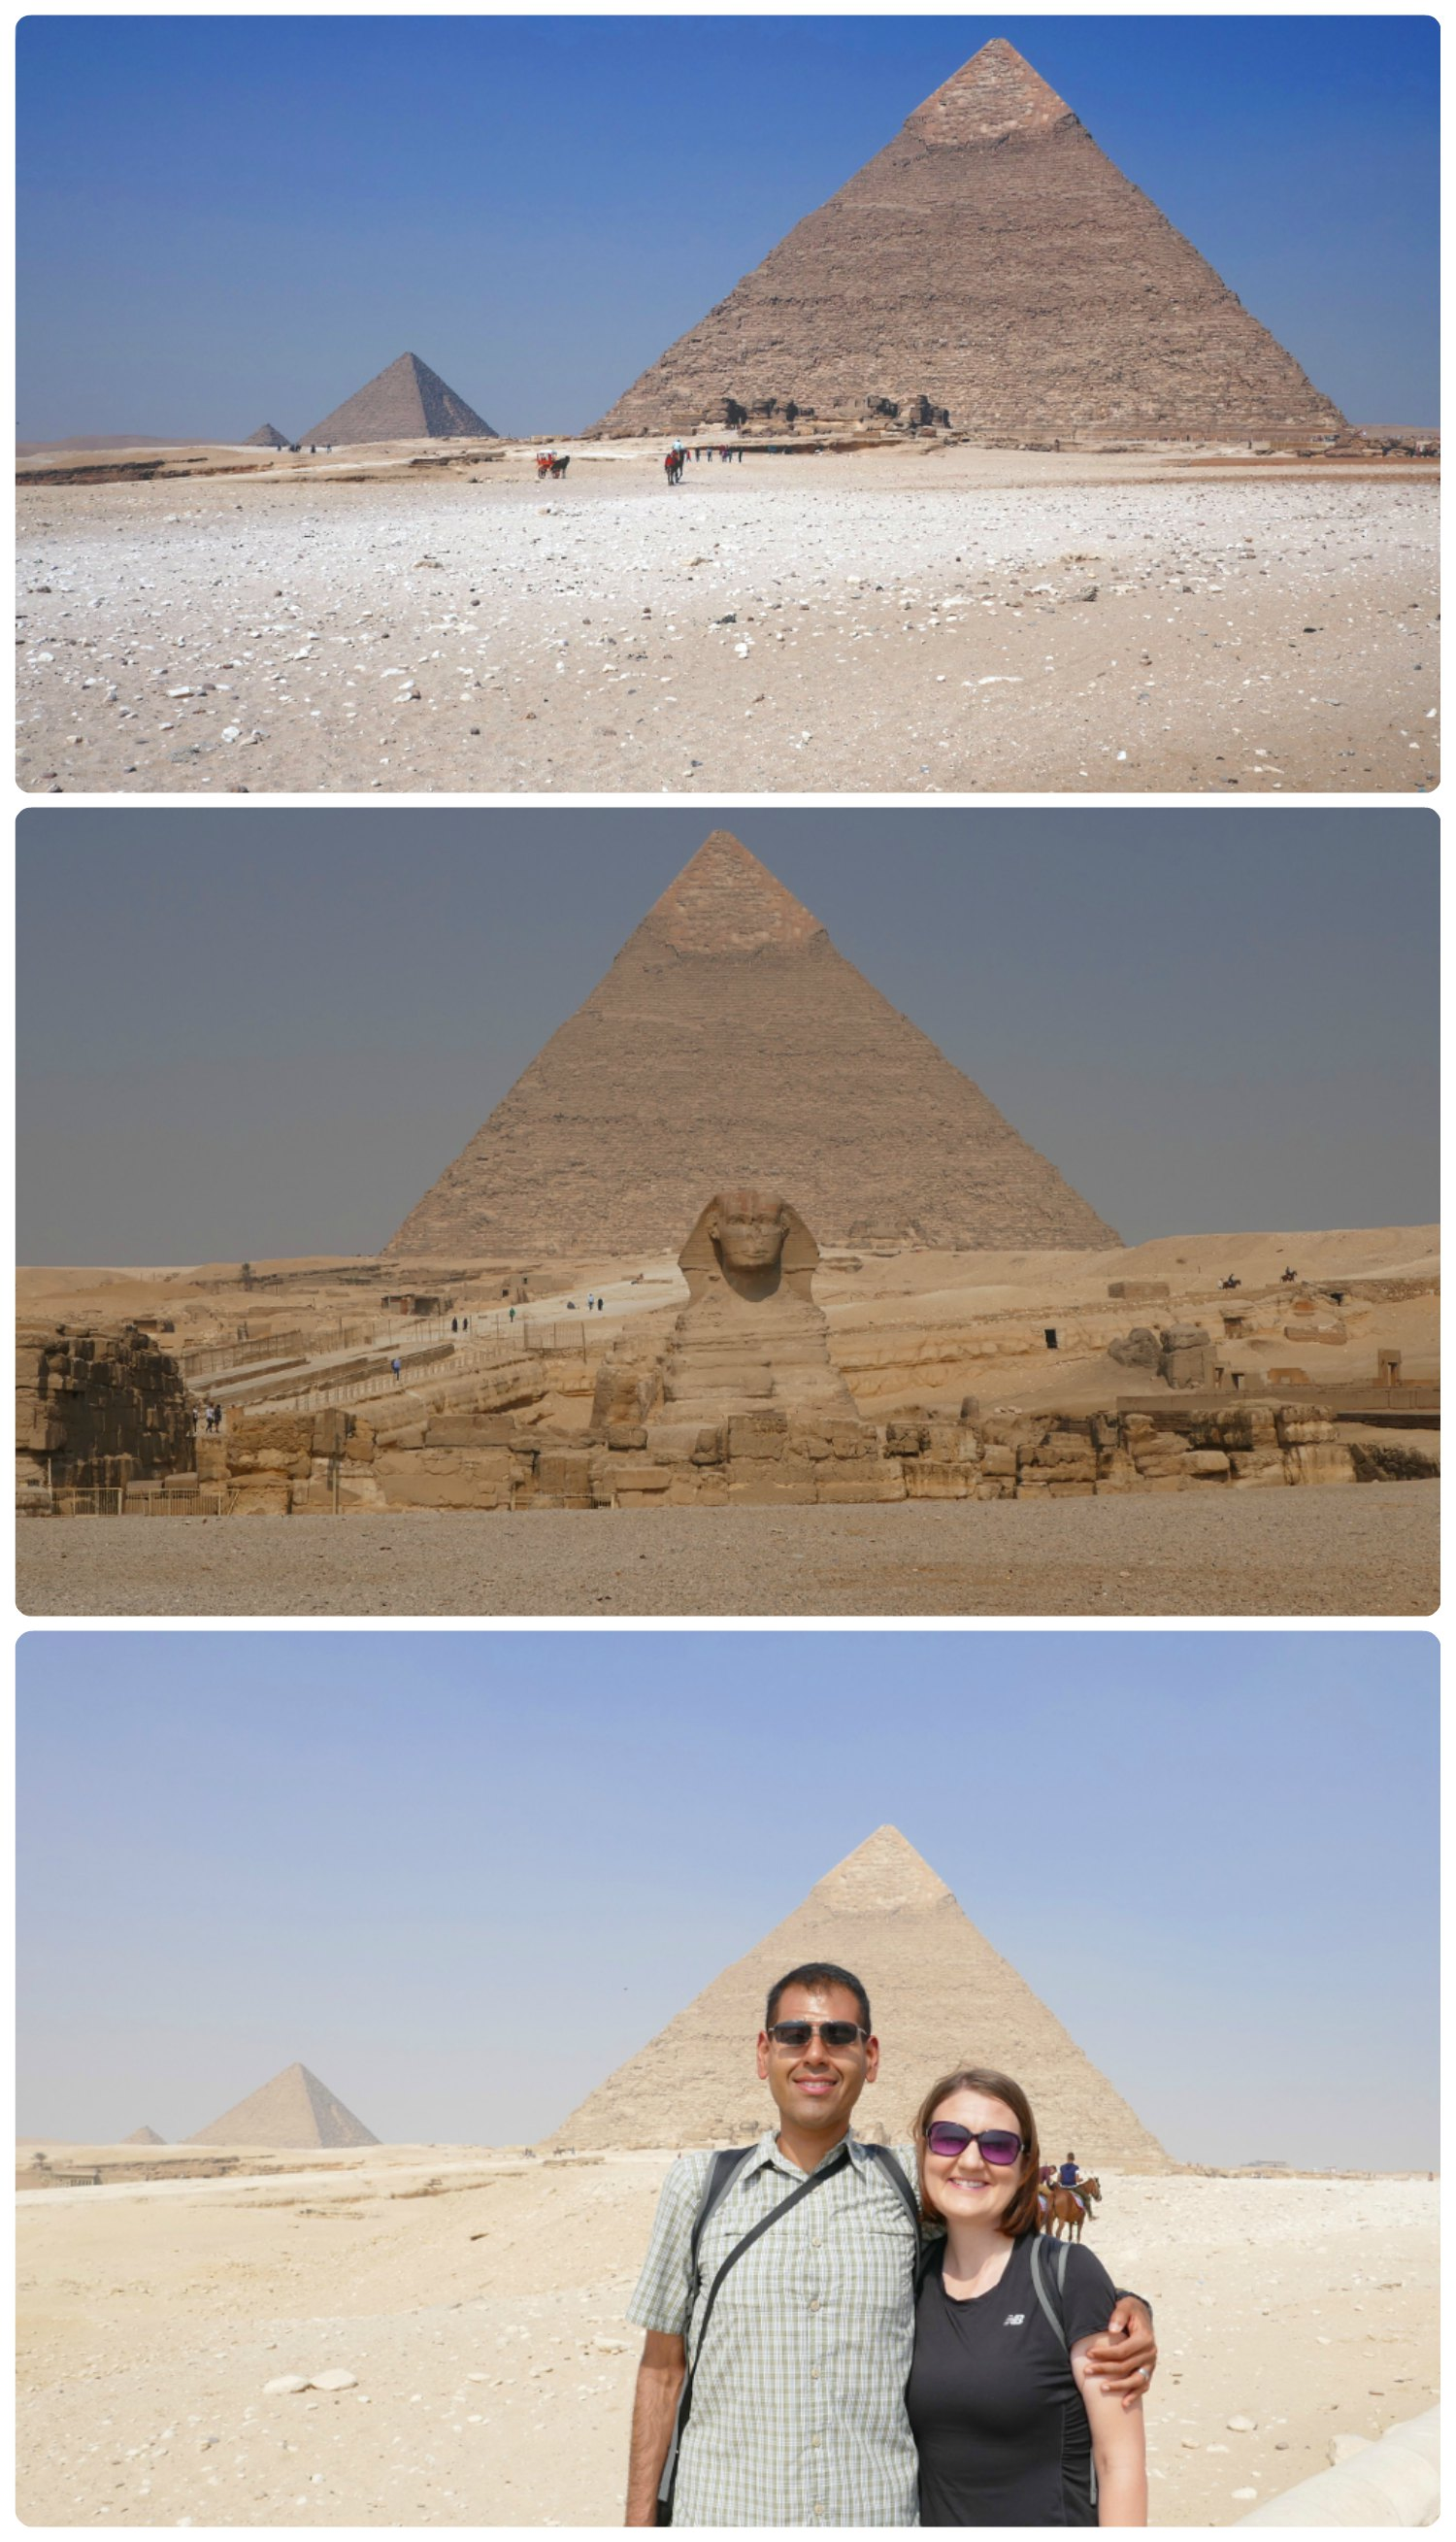 Top to bottom: Pyramid of Khafre with Menkaure's Pyramid to the left side of it, Pyramid of Khafre towering over the Great Sphinx of Giza, us in front of the Pyramid of Khafre.